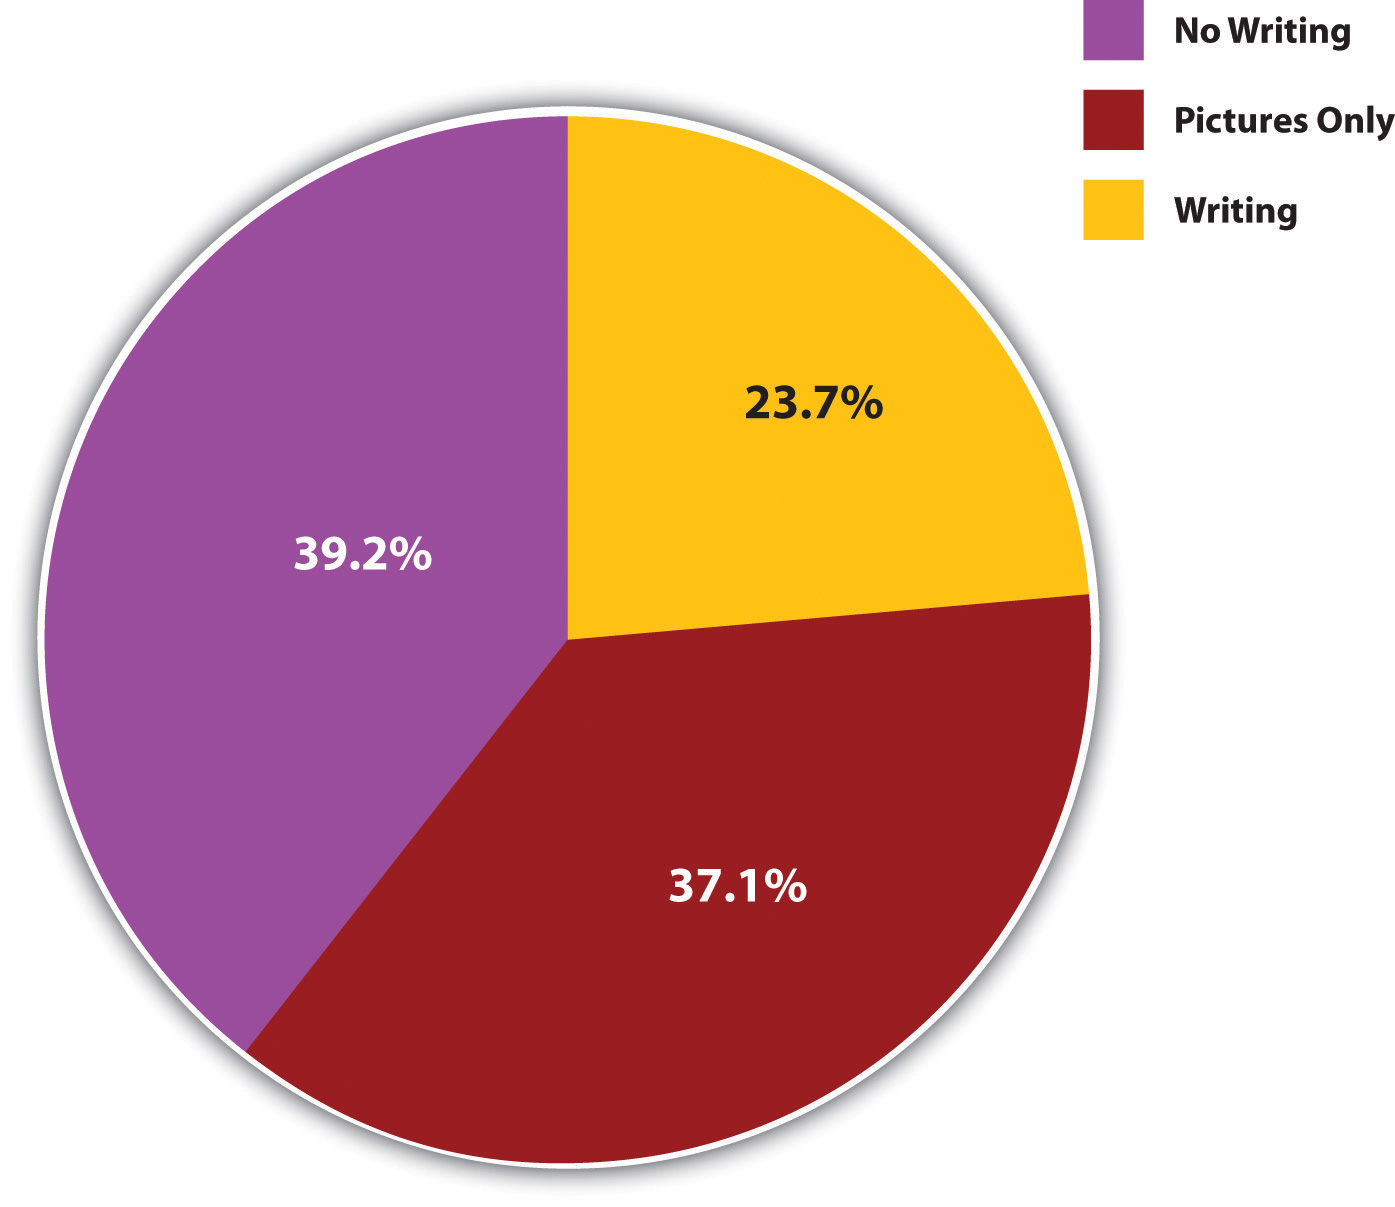 The Presence of Written Language (Percentage of Societies): 39.2% no writing, 37.1% pictures only, 23.7% writing